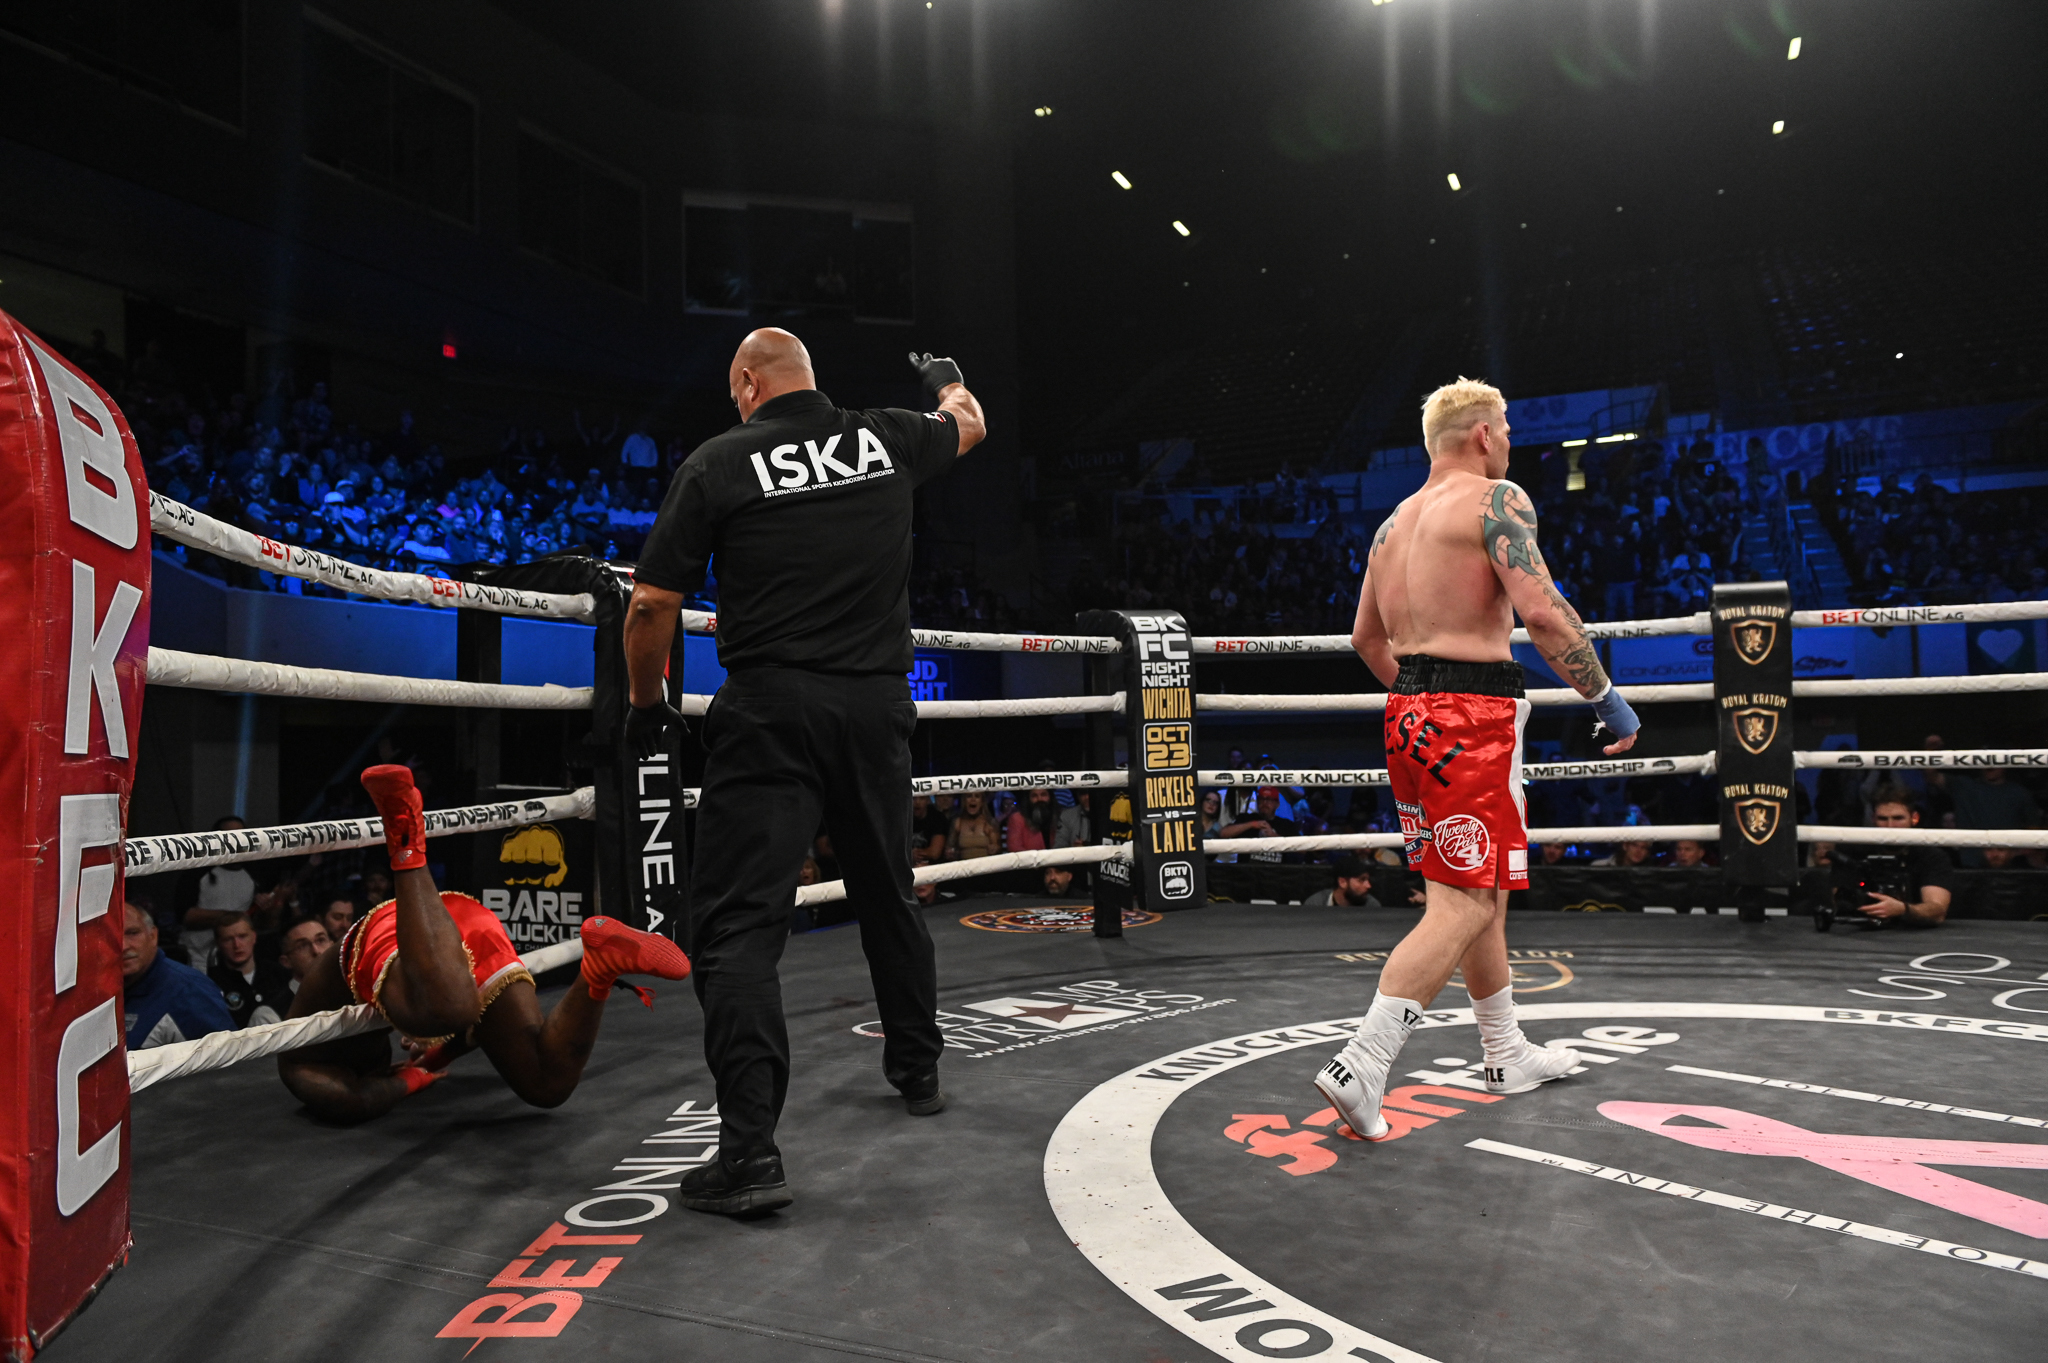 BKFC Fight Night Montana Results - Joe Riggs knocks out Melvin Guillard with one-punch